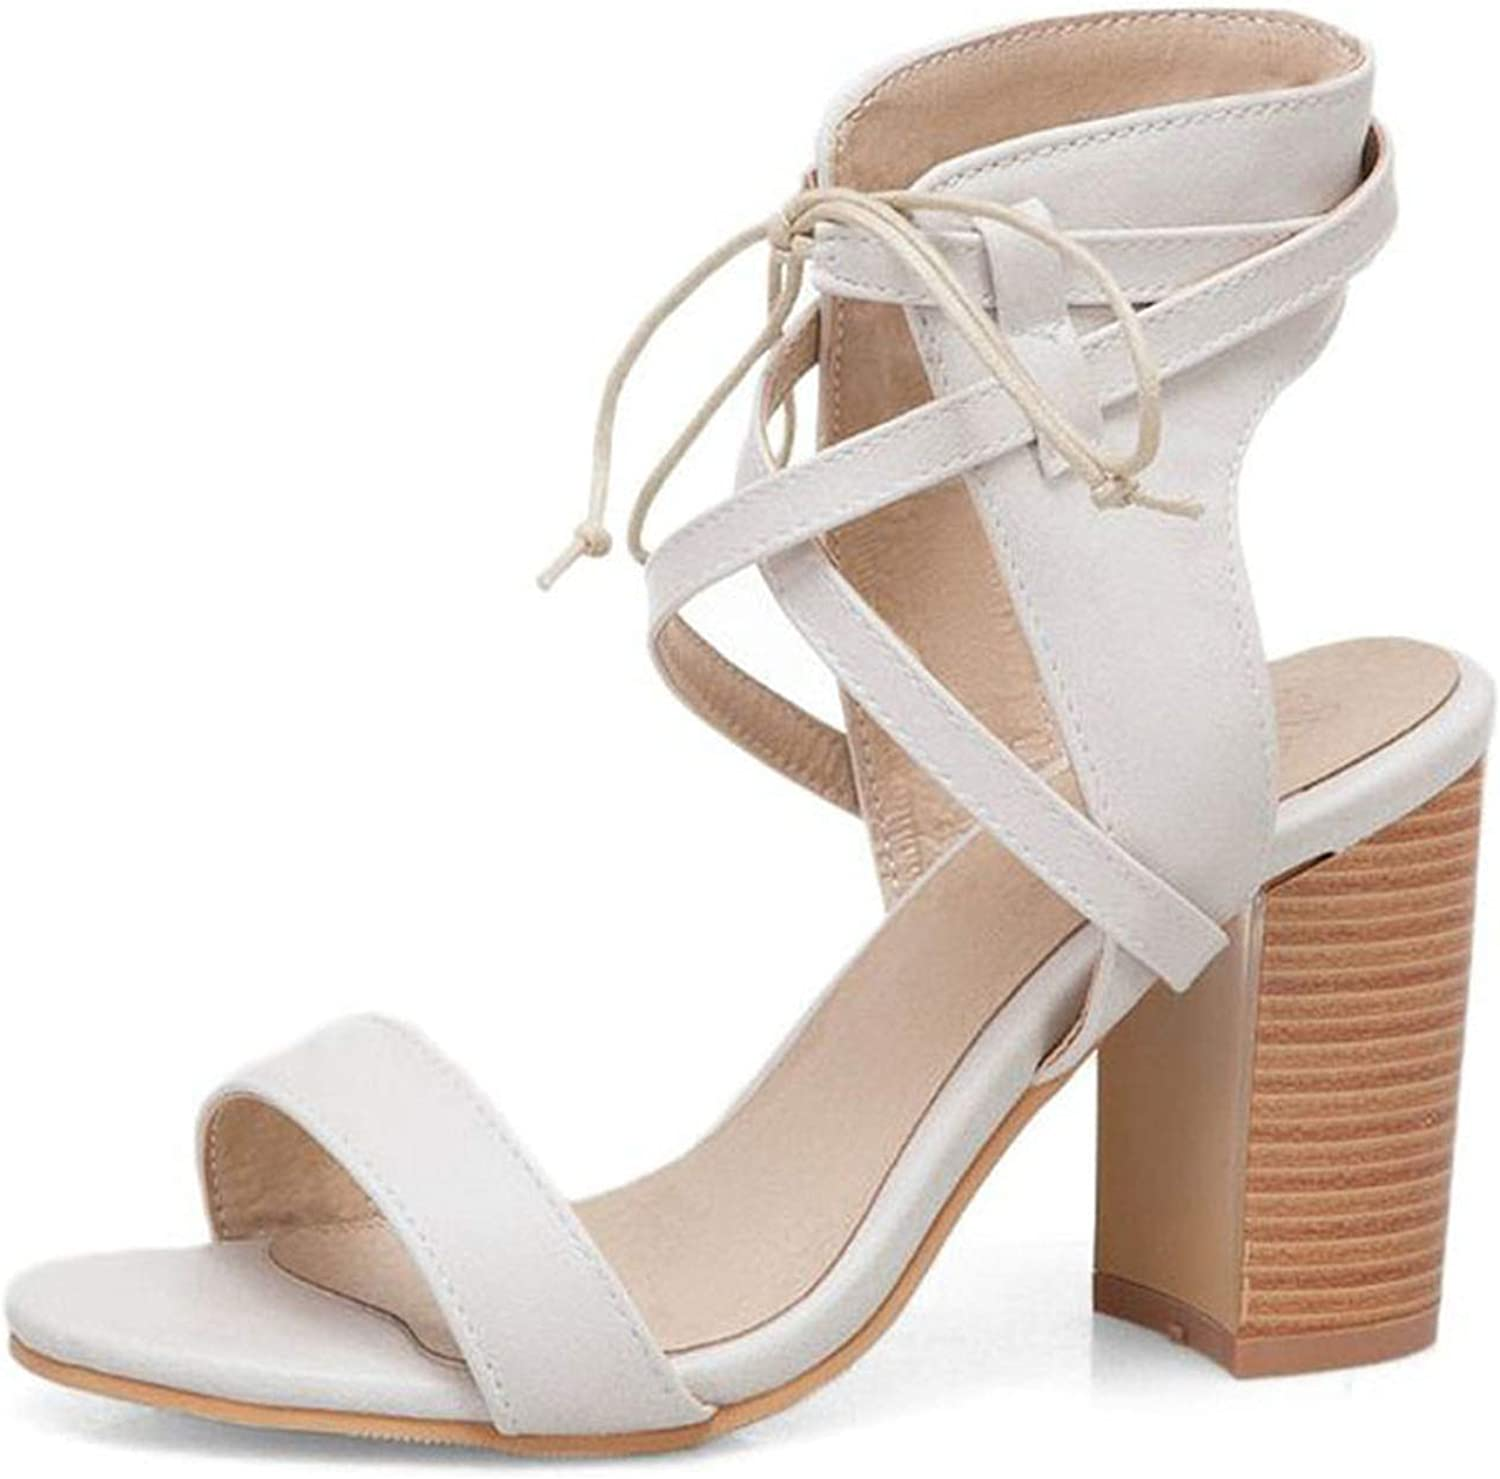 Fairly Gladiator High Heel Cross Strap Club Sexy Party shoes Daily,Beige,7